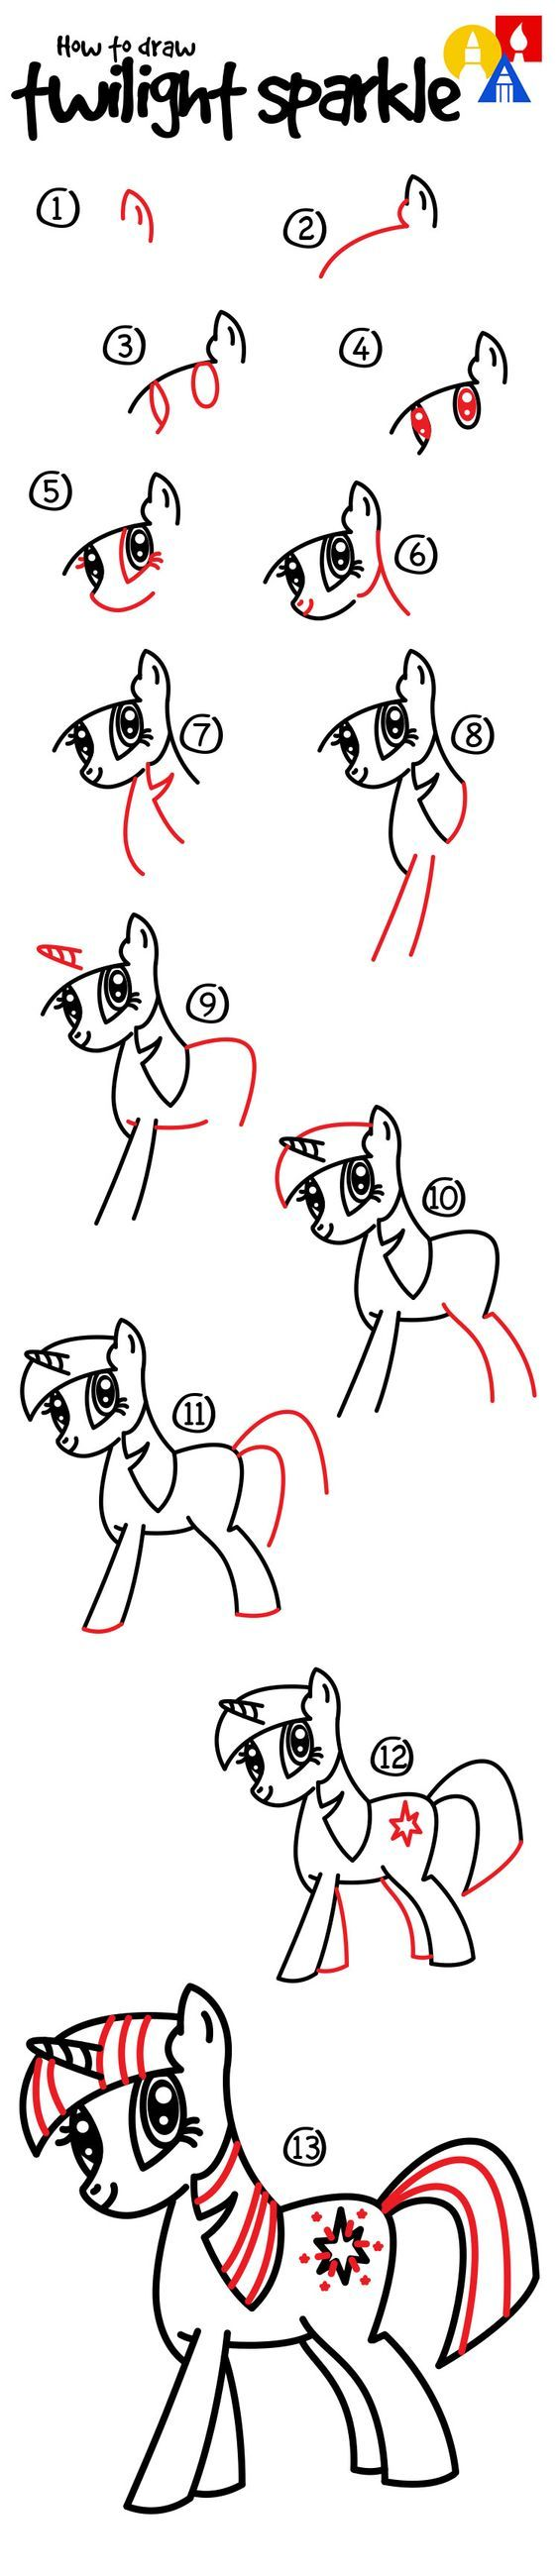 My little pony body drawing doodle craft design and draw your -  My Little Pony See More 024c7ee6c478c8f5d14625b7ad06d292 Jpg 564 2600 How To Drawdoodles